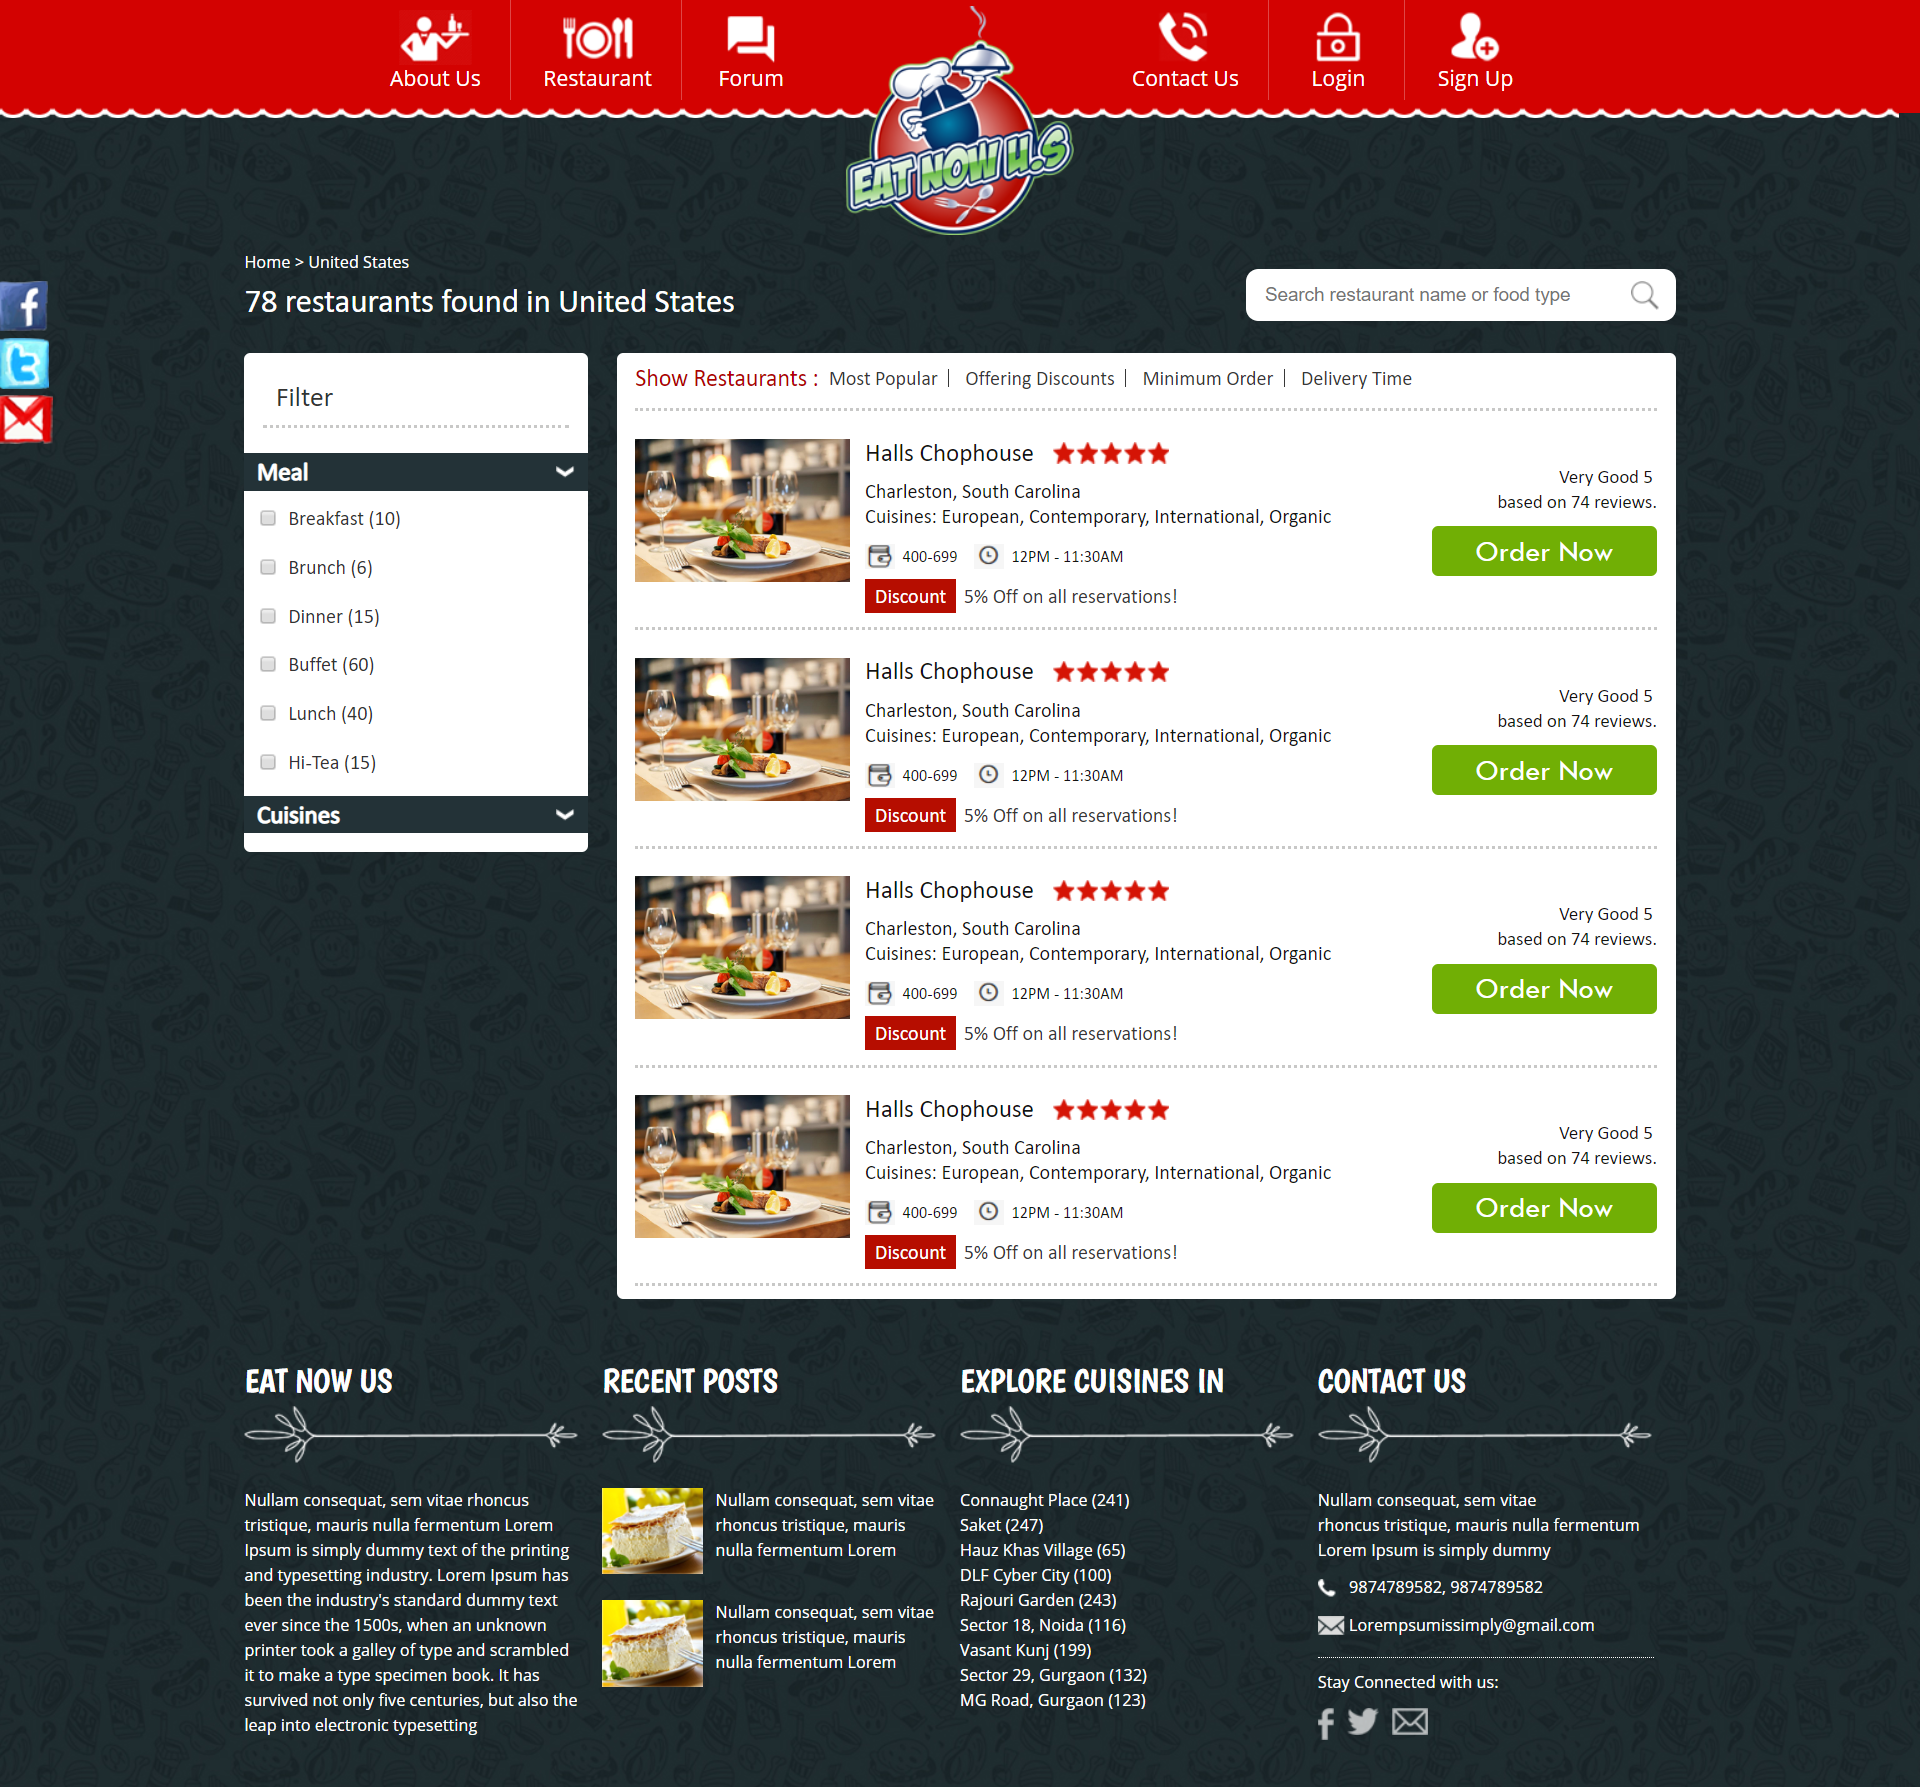 Food-derlivery-website-2